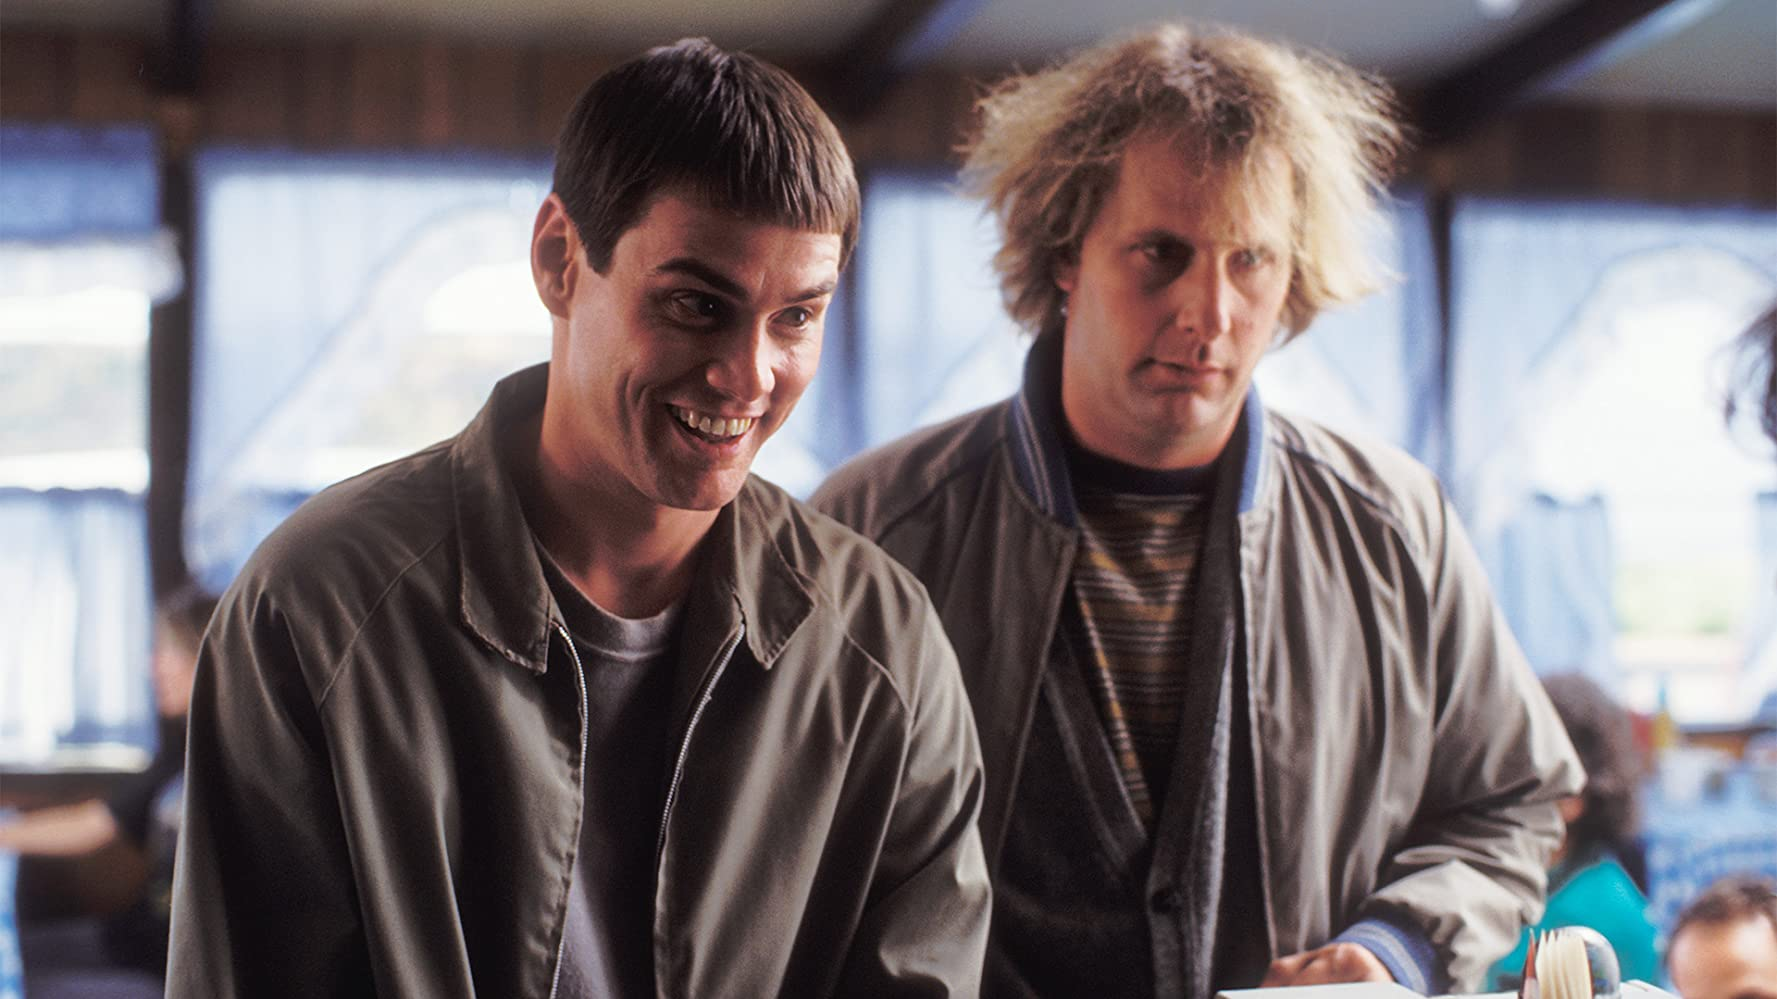 Jim Carrey and Jeff Daniels in Dumb and Dumber 1994